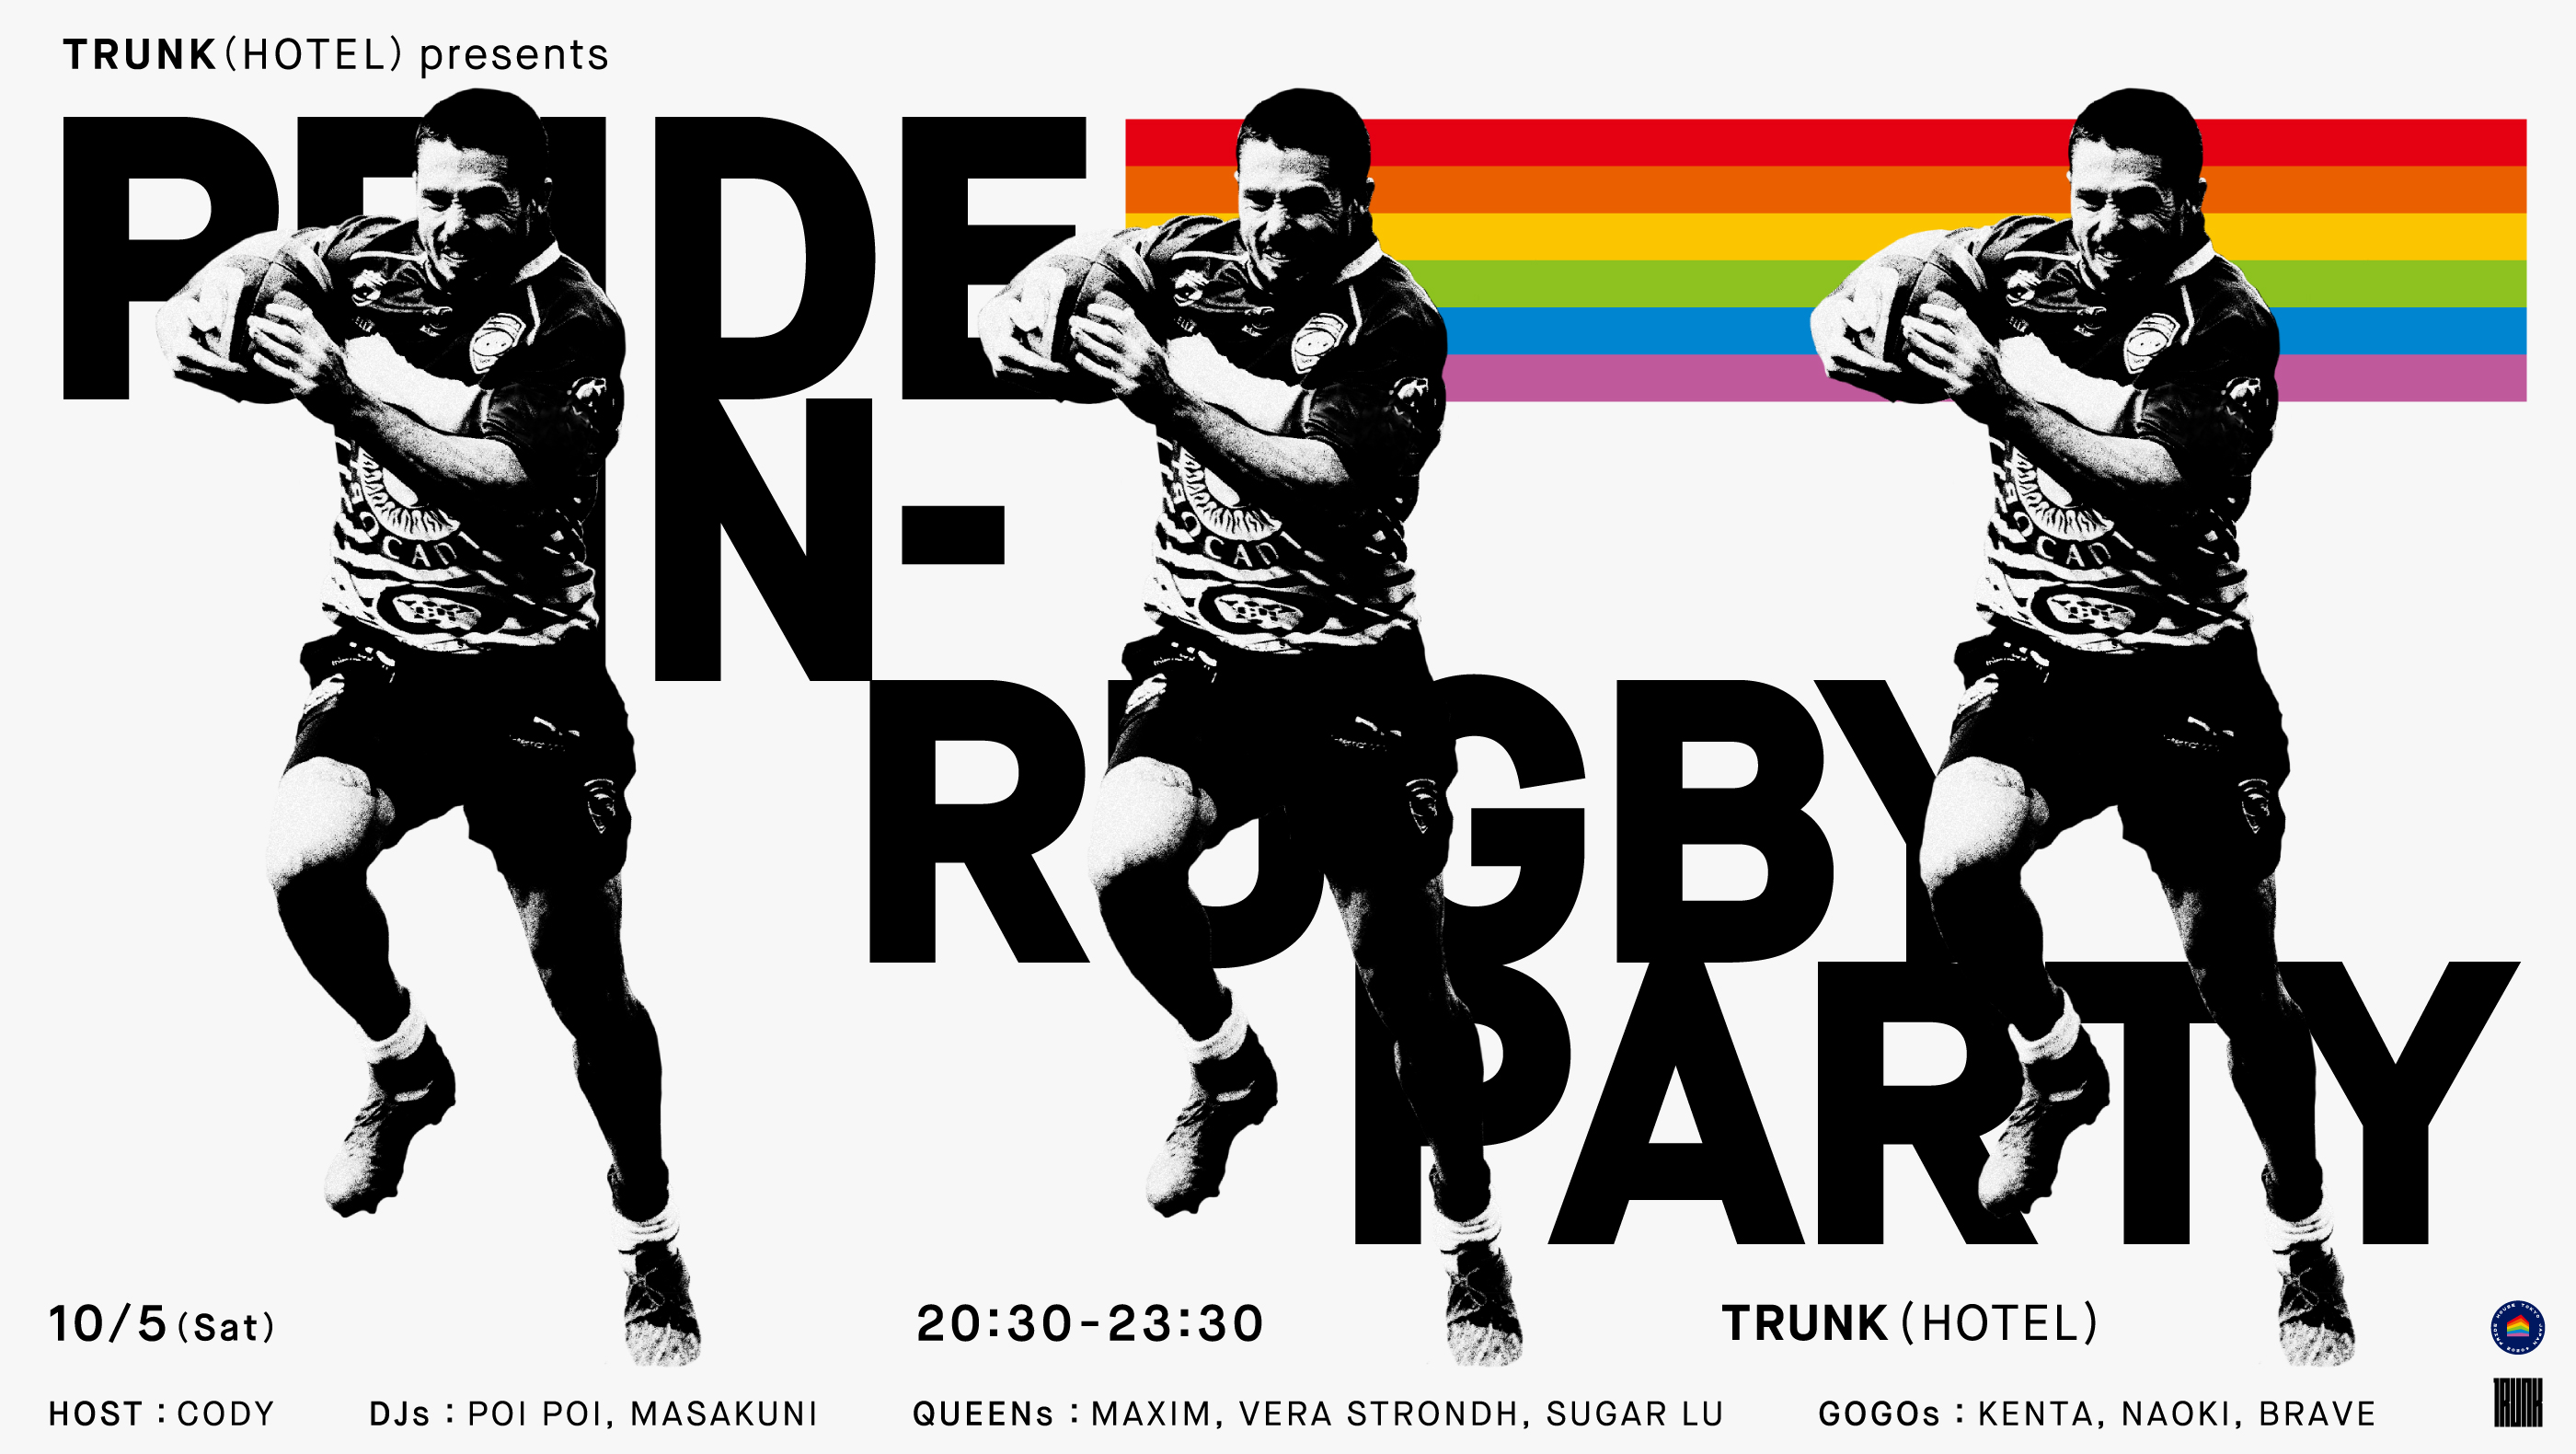 TRUNK(HOTEL) presents PRIDE-IN-RUGBY PARTY